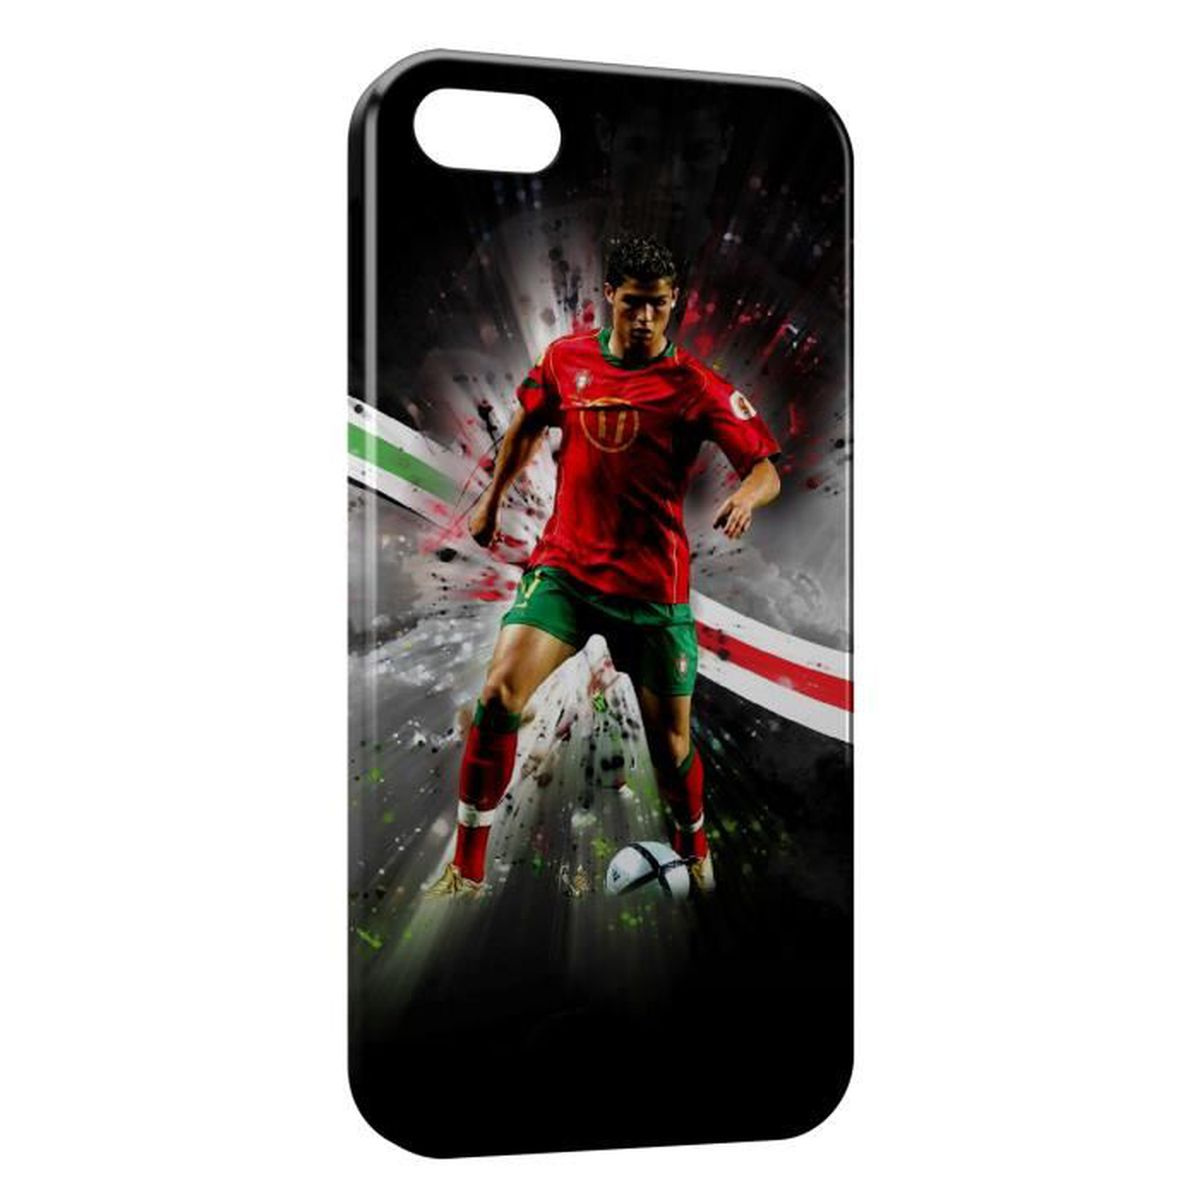 coque iphone 4 foot